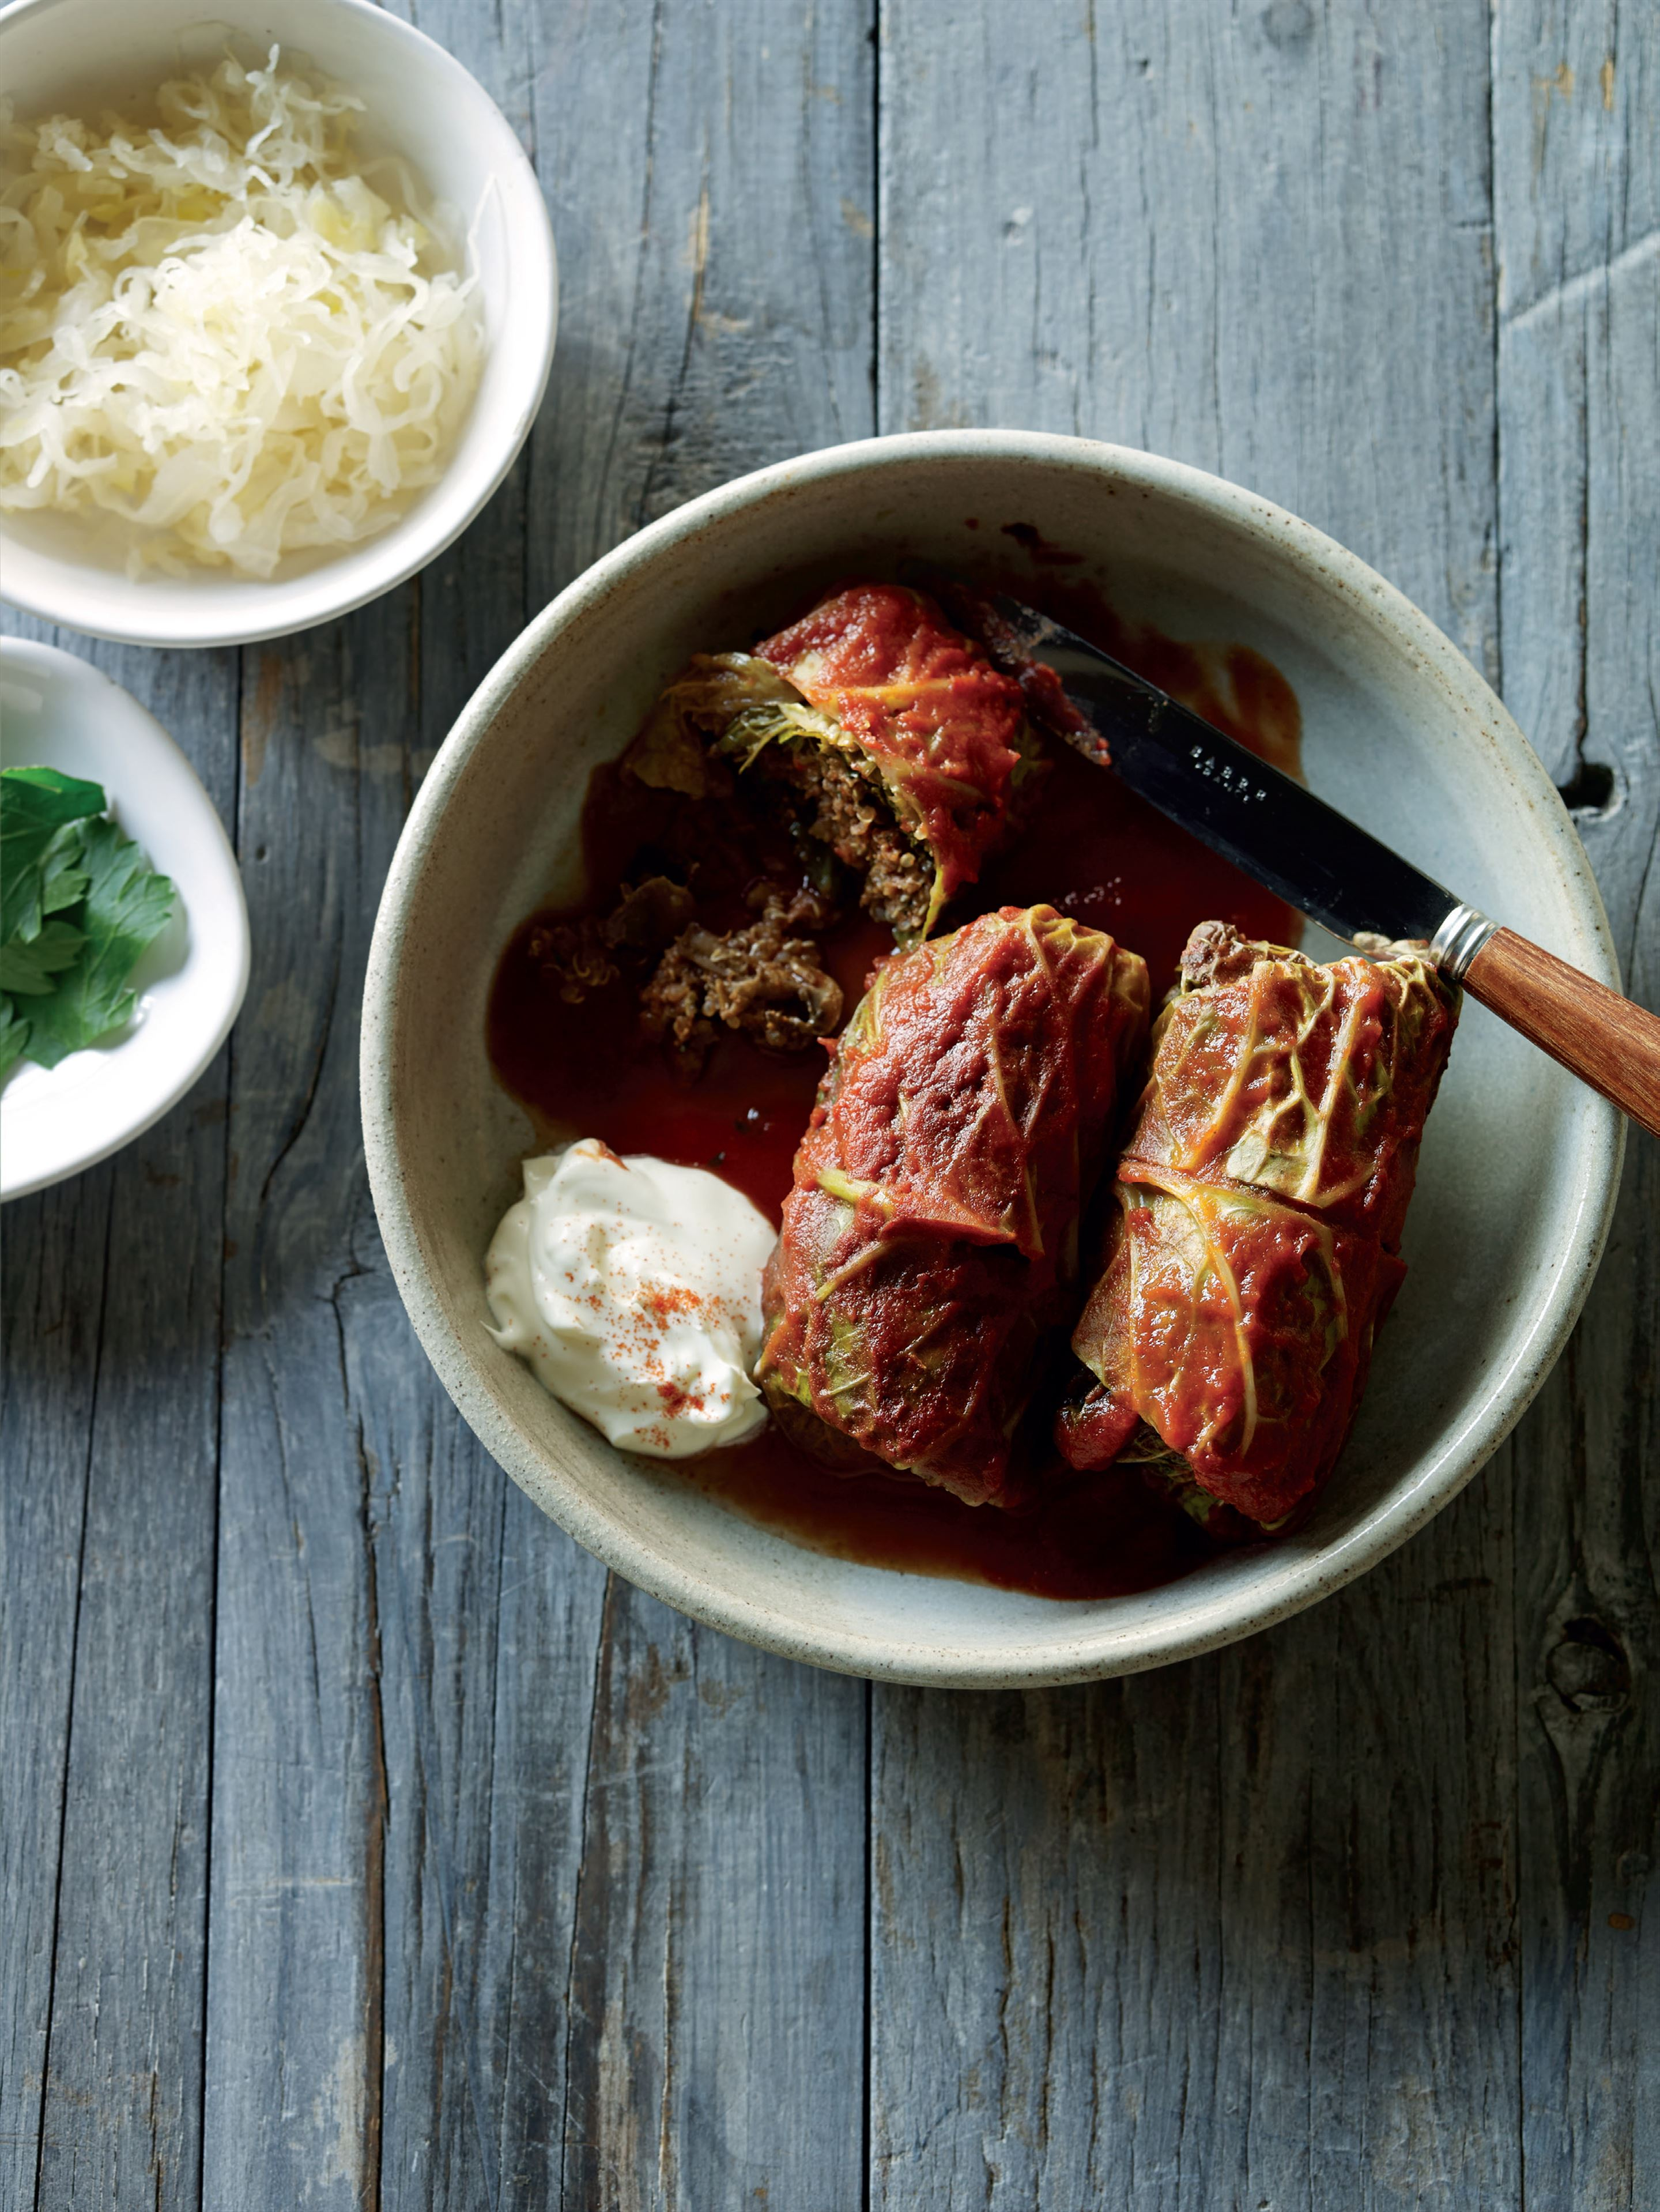 Pork, beef and mushroom-stuffed cabbage rolls